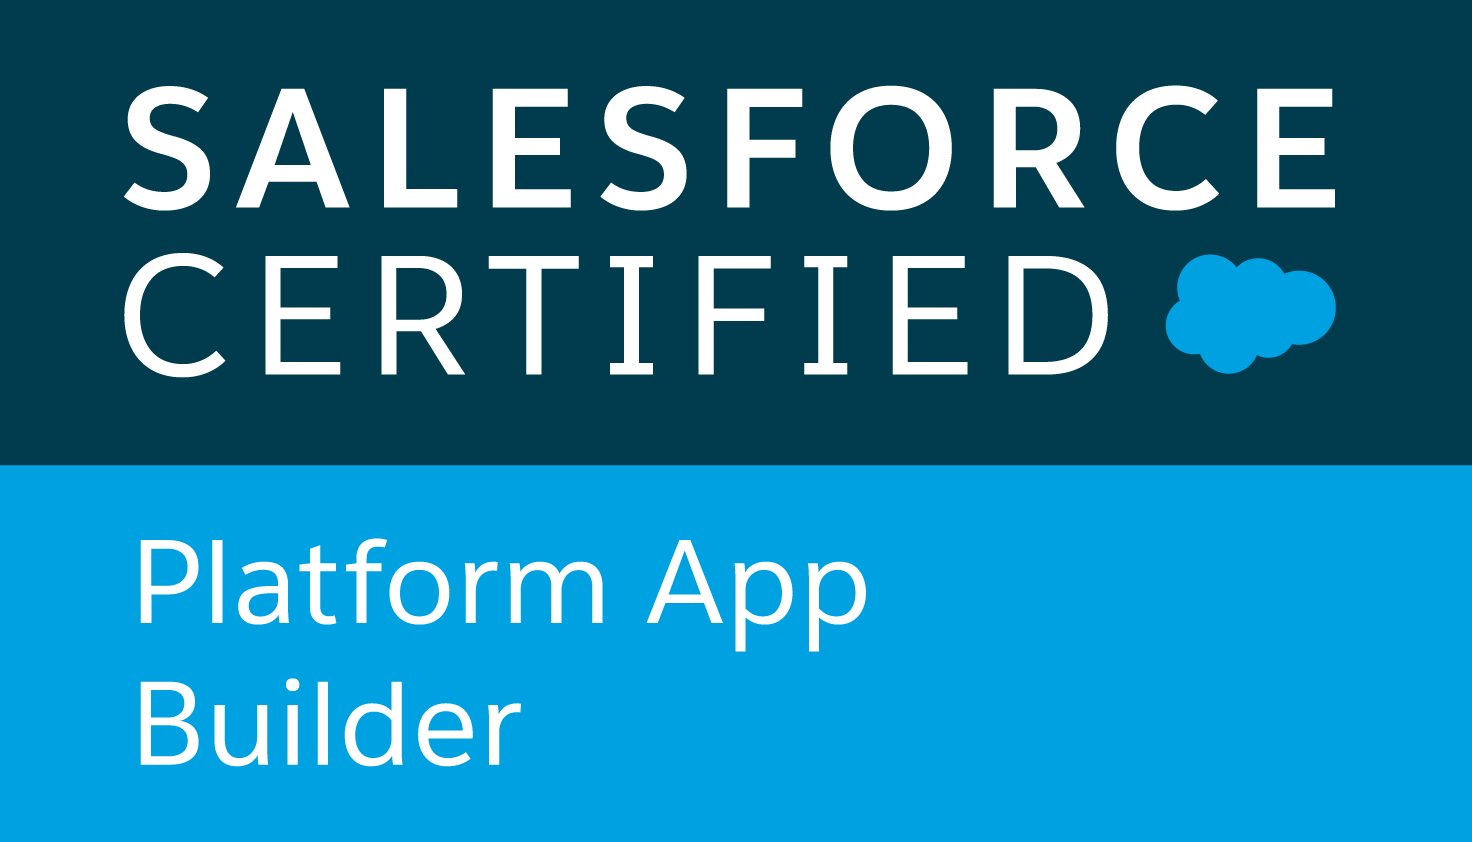 Salesforce Certified Platform App Builder